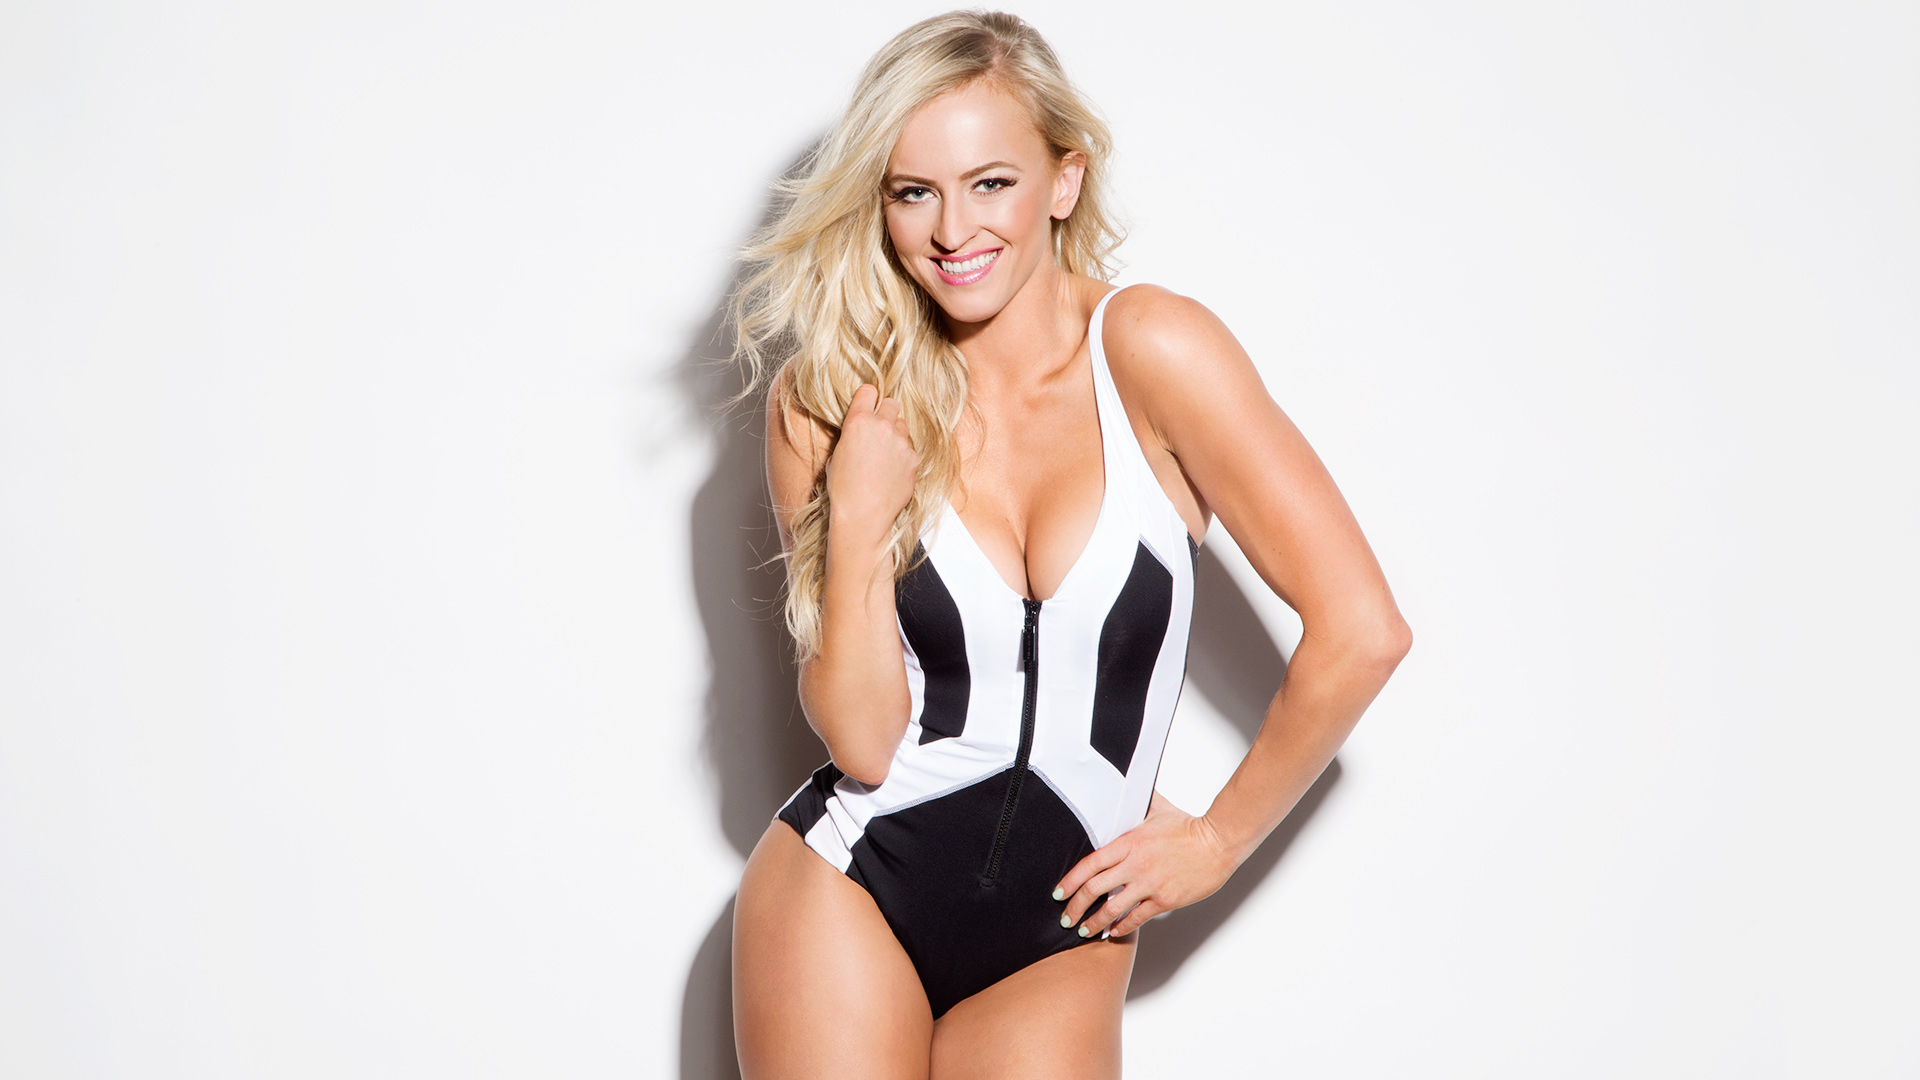 image Summer rae returns for facial